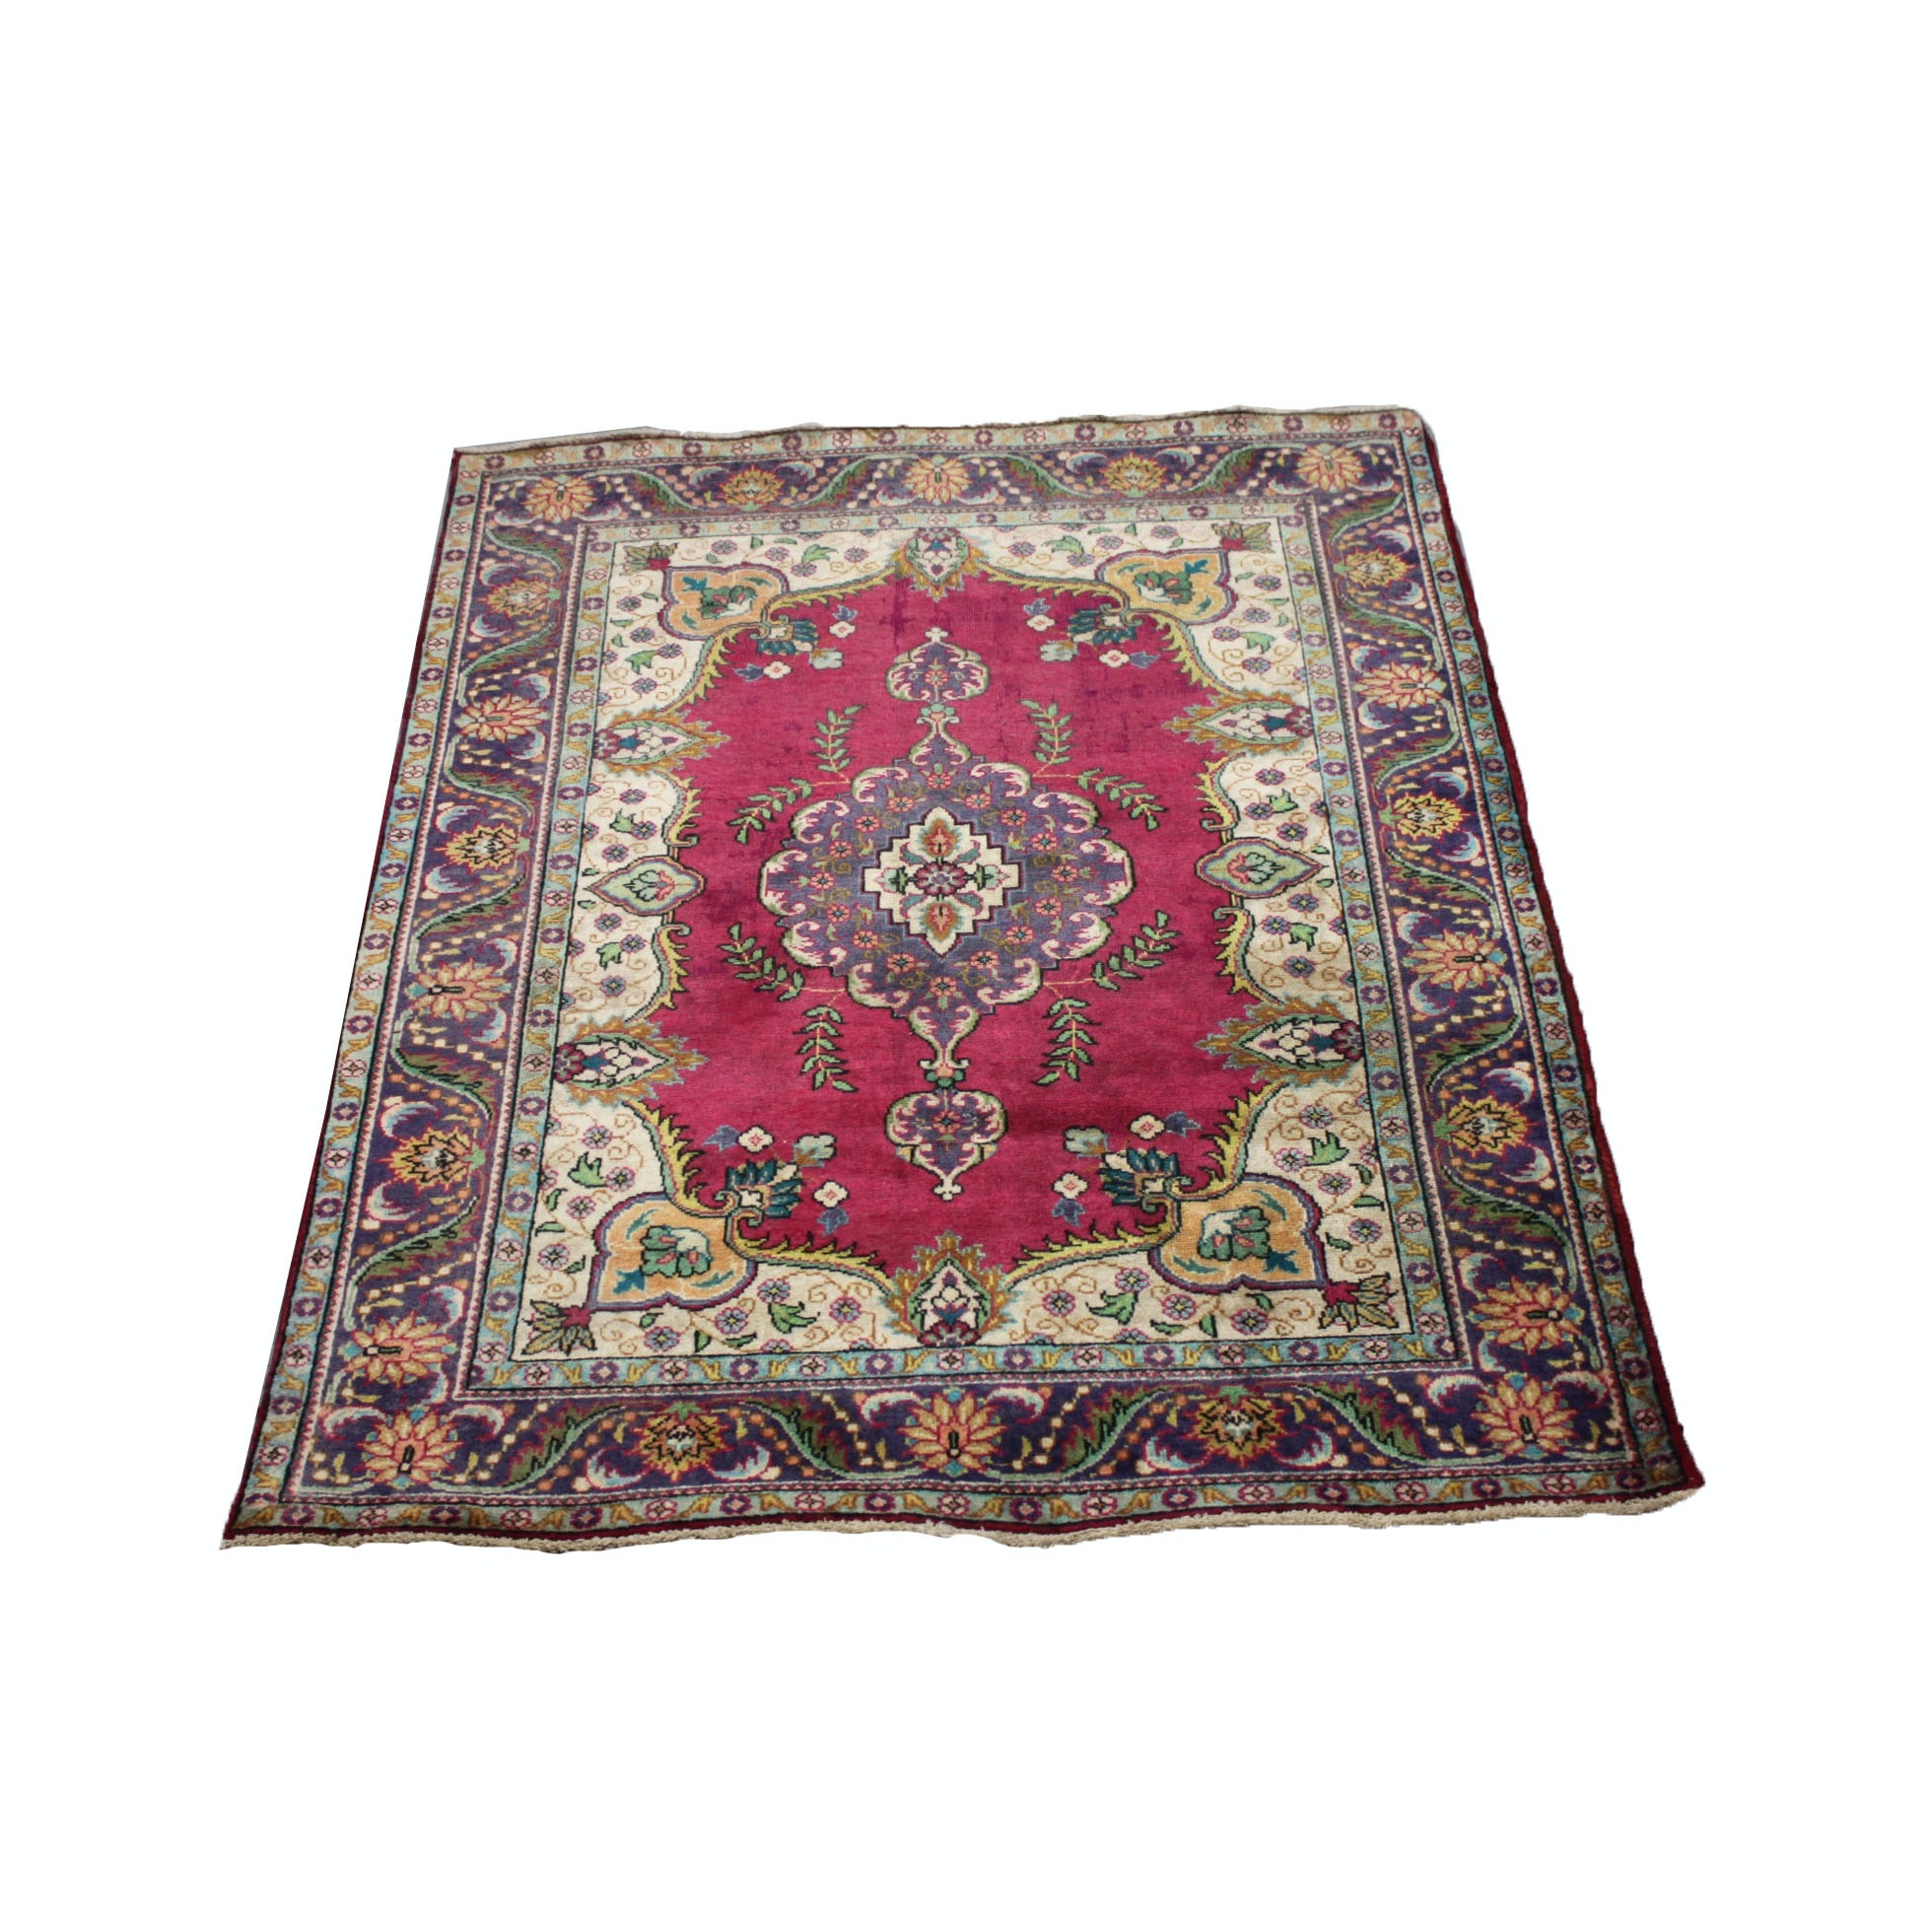 Vintage Hand-Knotted Persian Tabriz Wool Area Rug